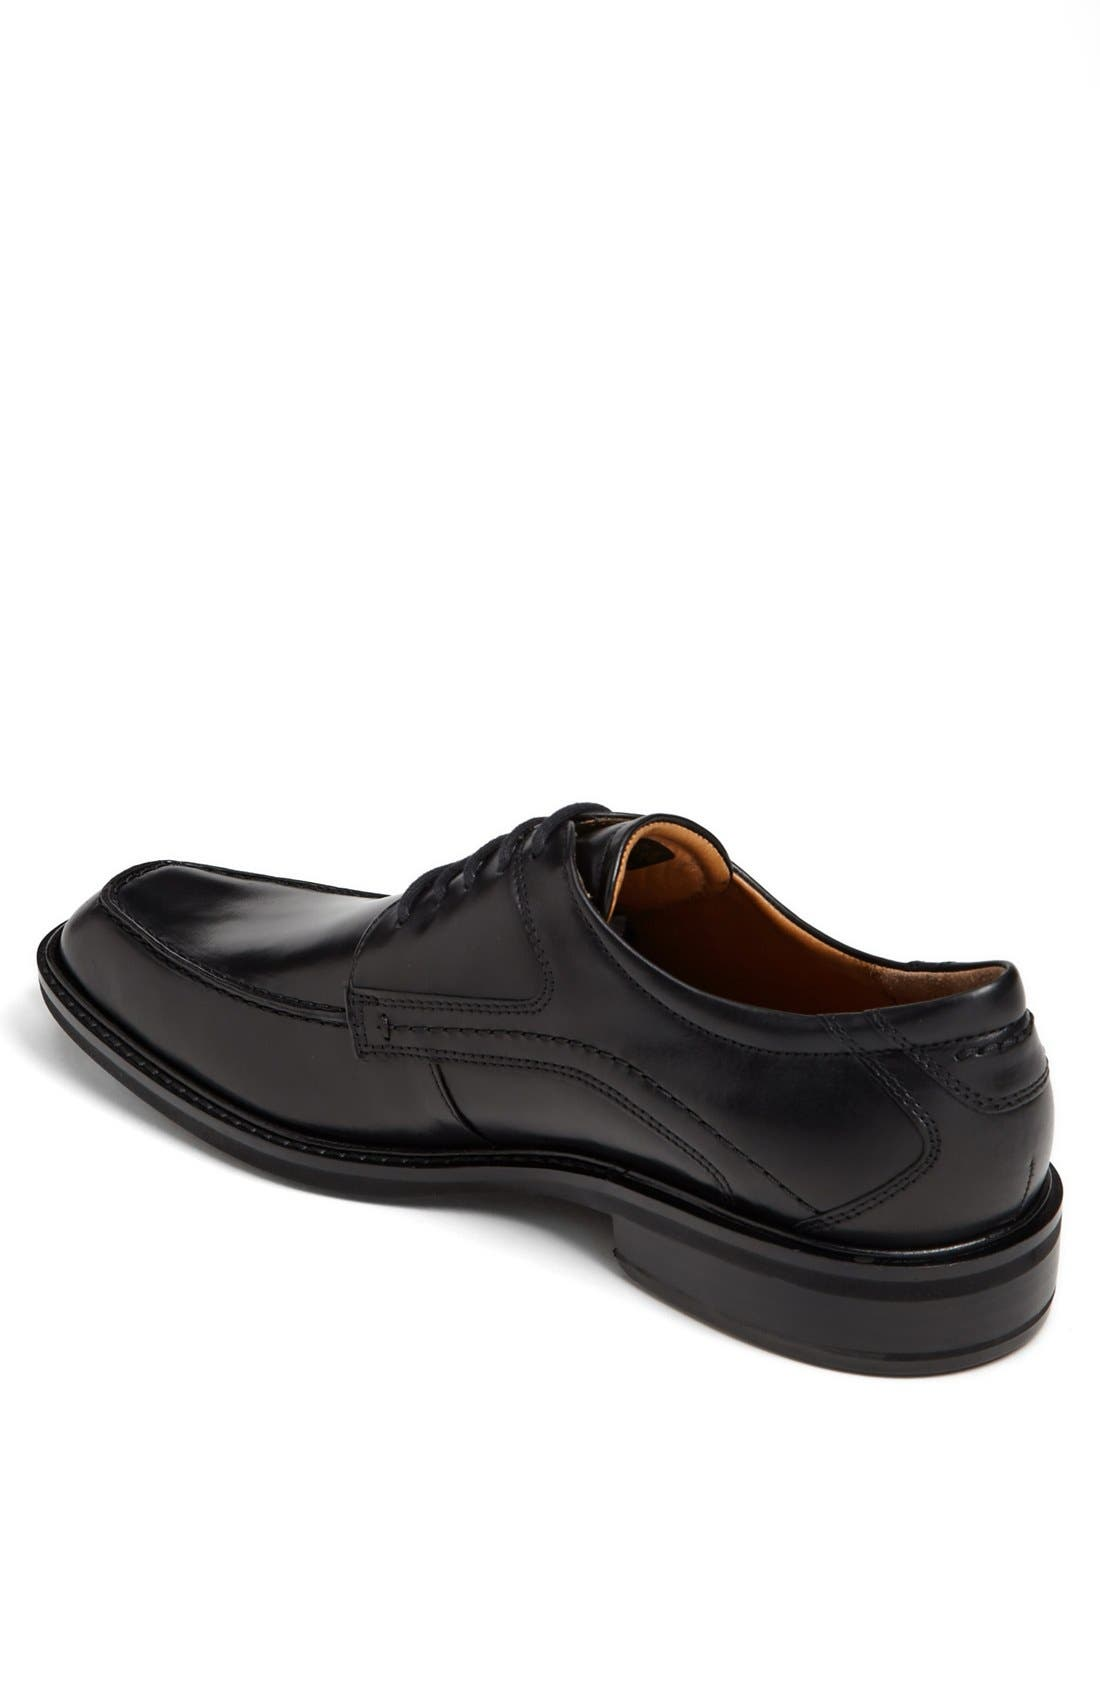 'Windsor' Apron Toe Derby,                             Alternate thumbnail 2, color,                             Black